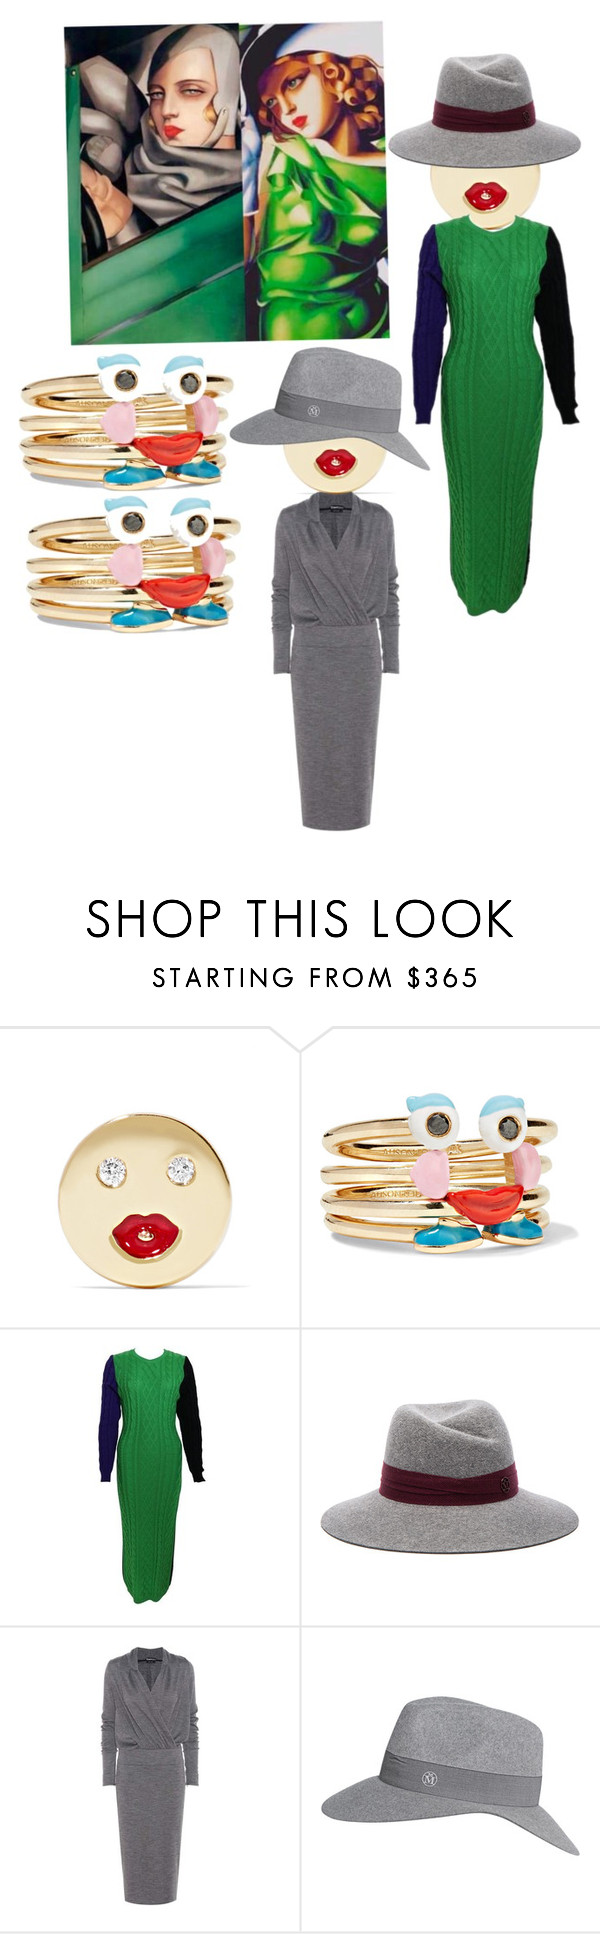 """Happy Tuesday"" by kit92 ❤ liked on Polyvore featuring Alison Lou, Versace, Maison Michel and Tom Ford"